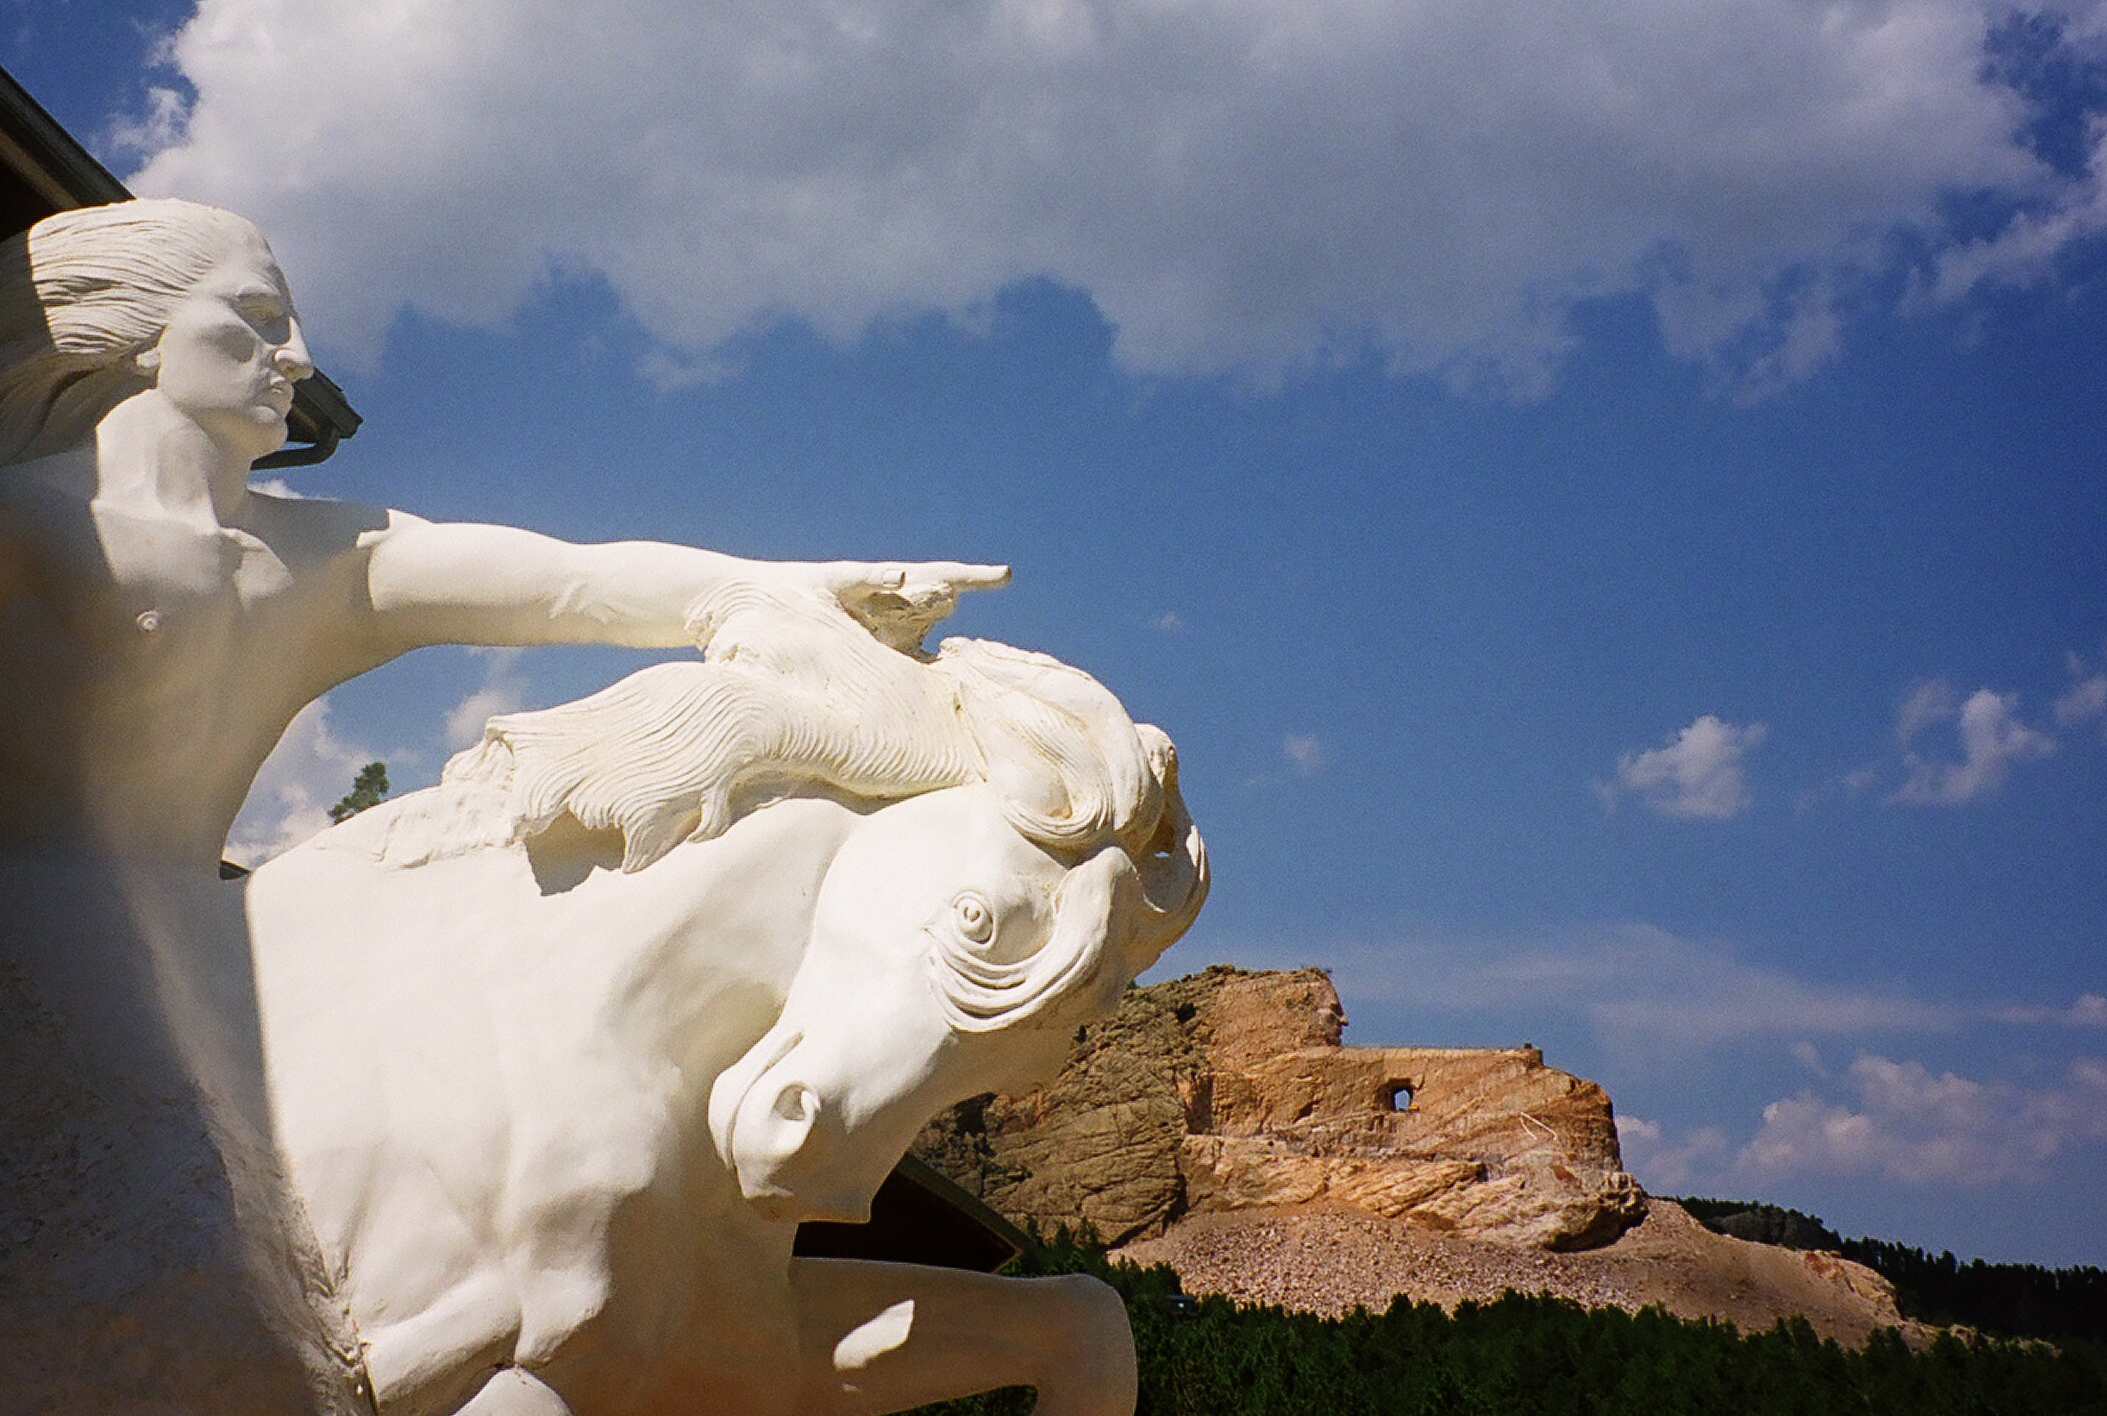 Crazy Horse Memorial and scale model